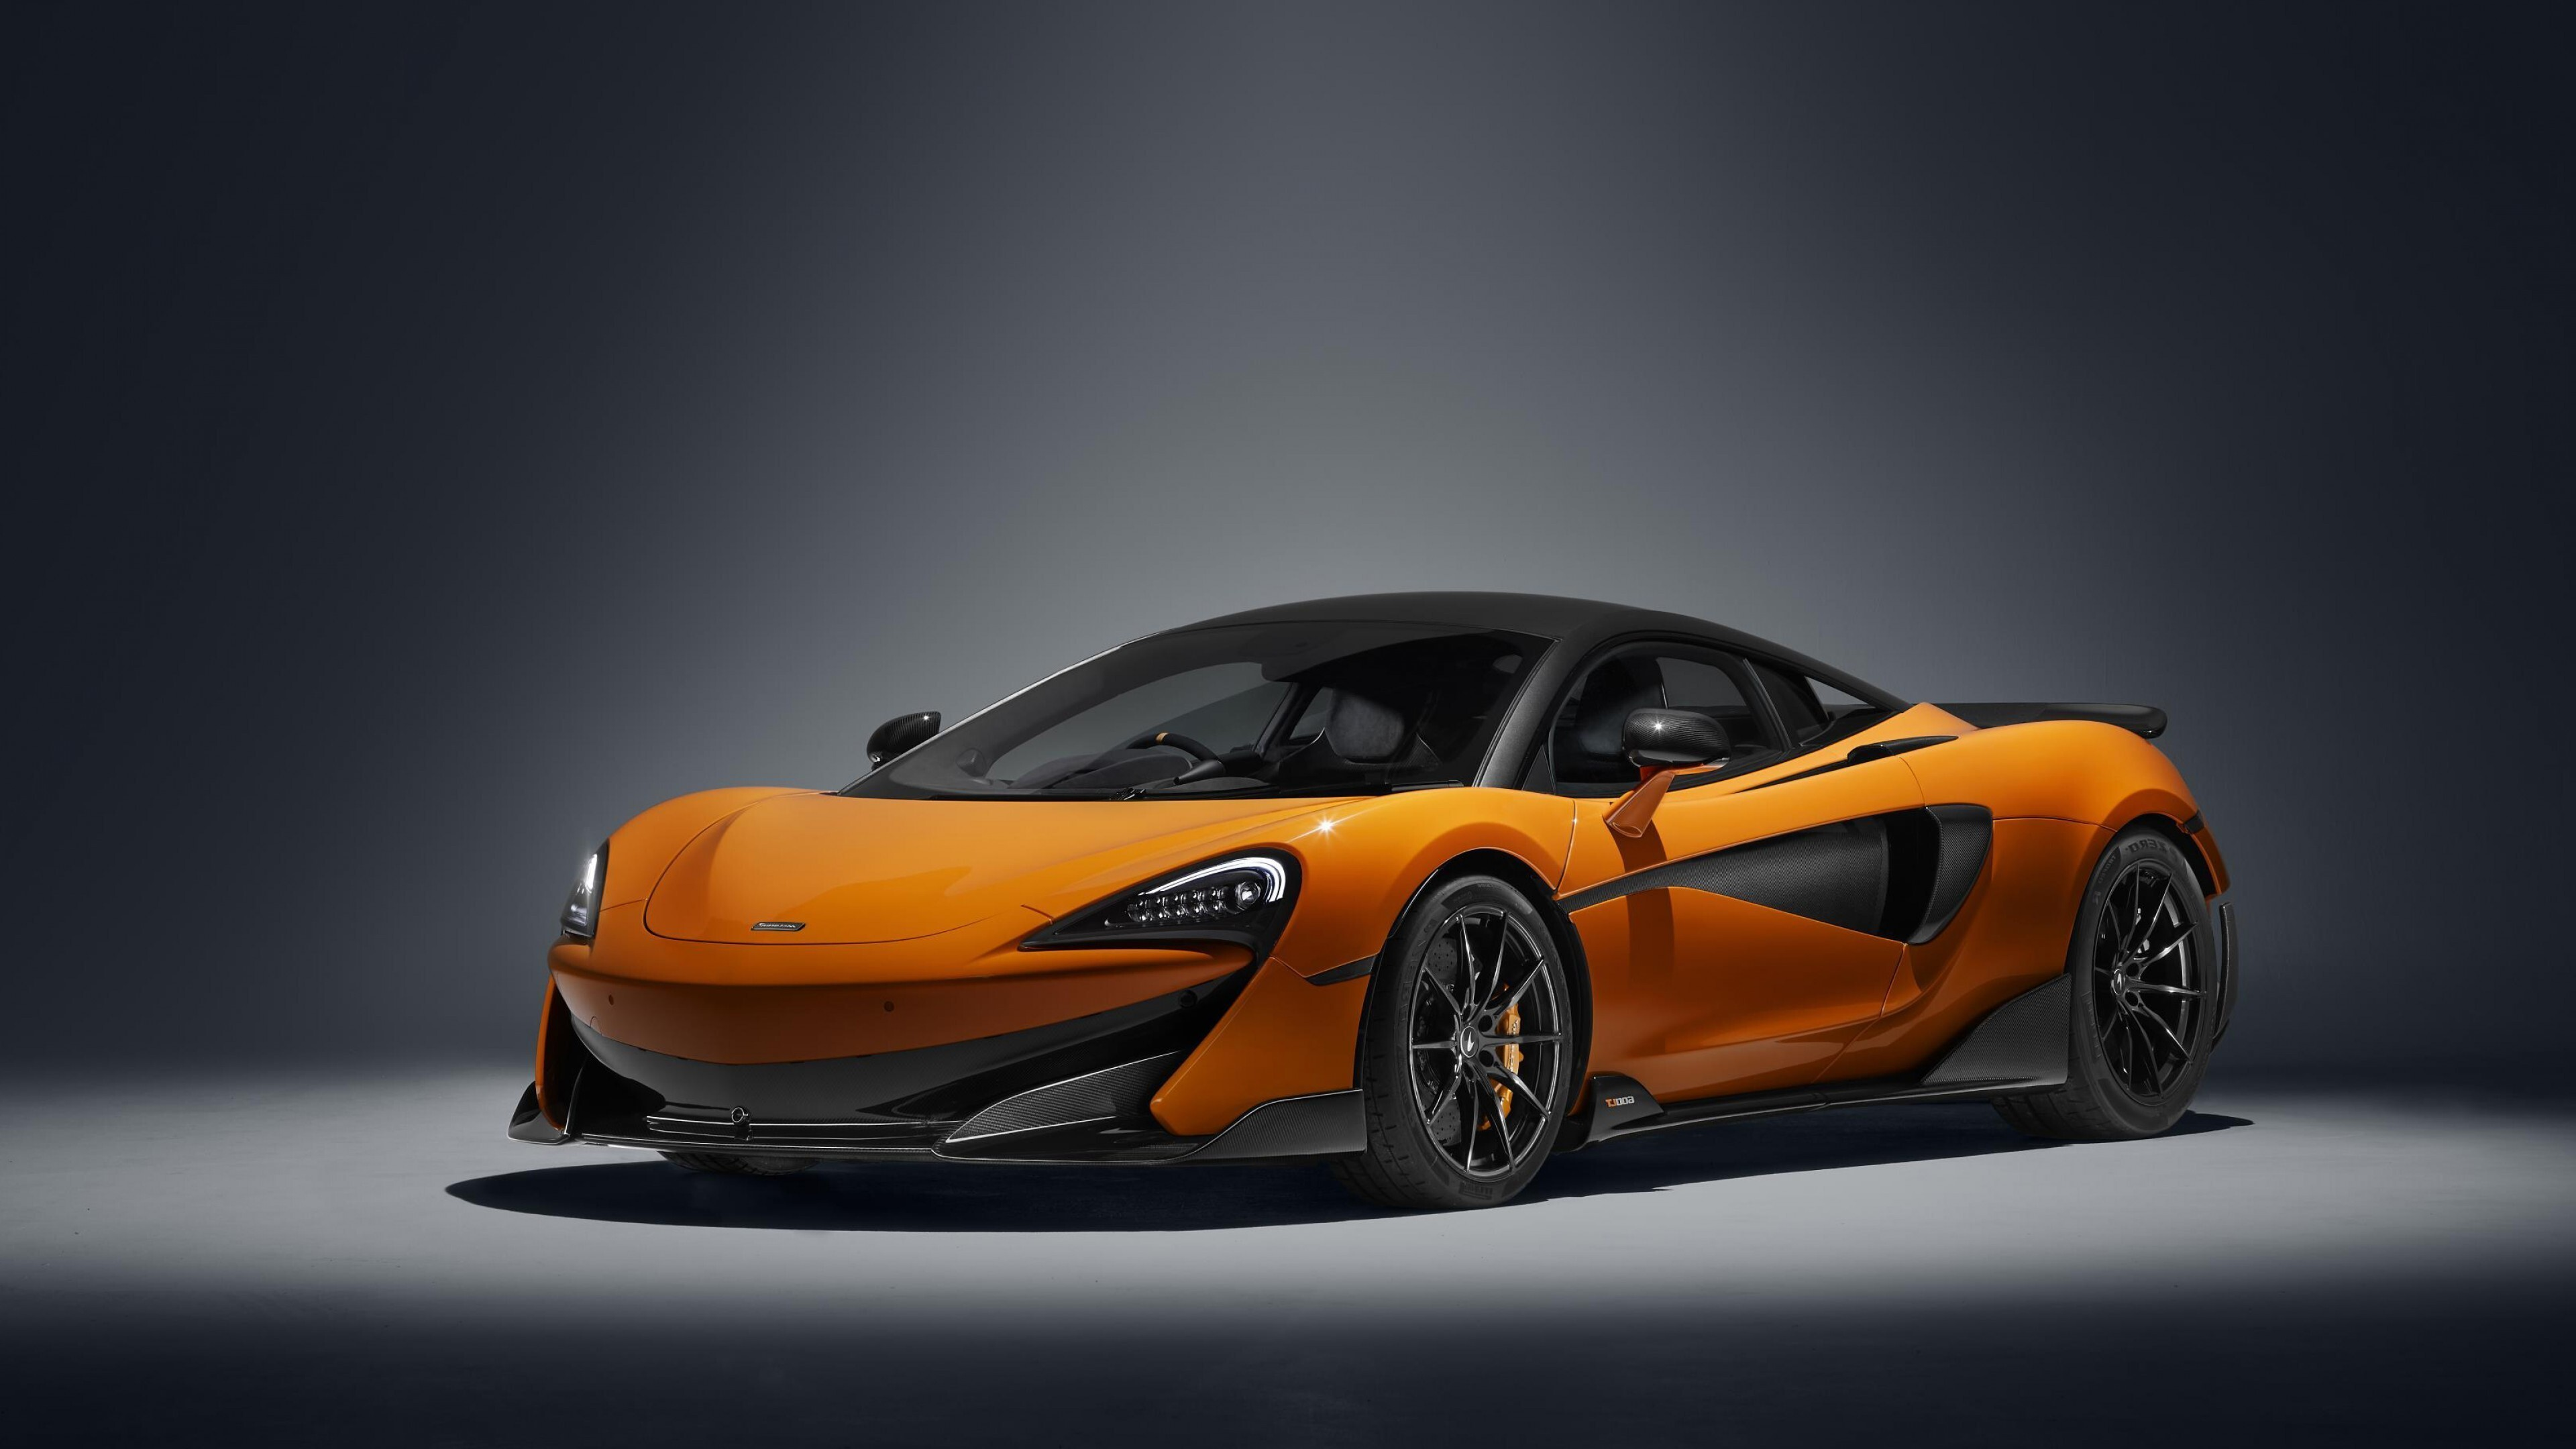 4k Wallpaper Of 2019 Mclaren 600lt Race Track Car Hd